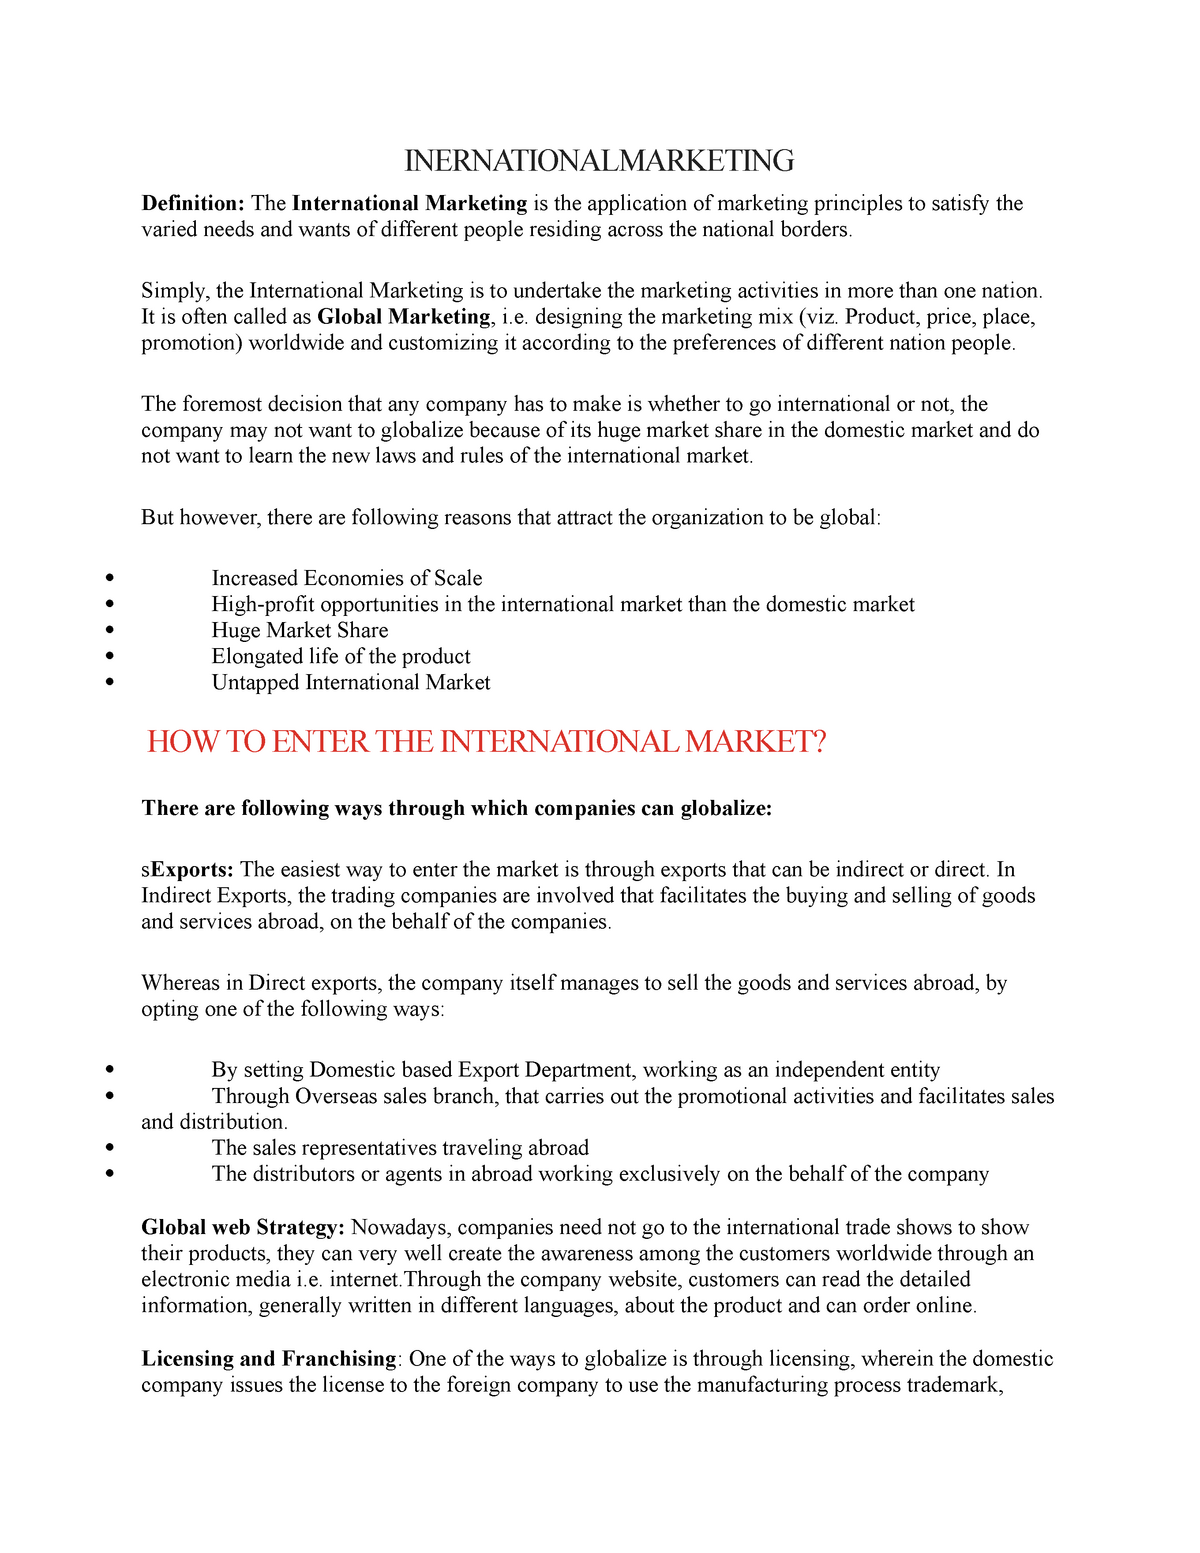 International - marketing notes - 3201: Business